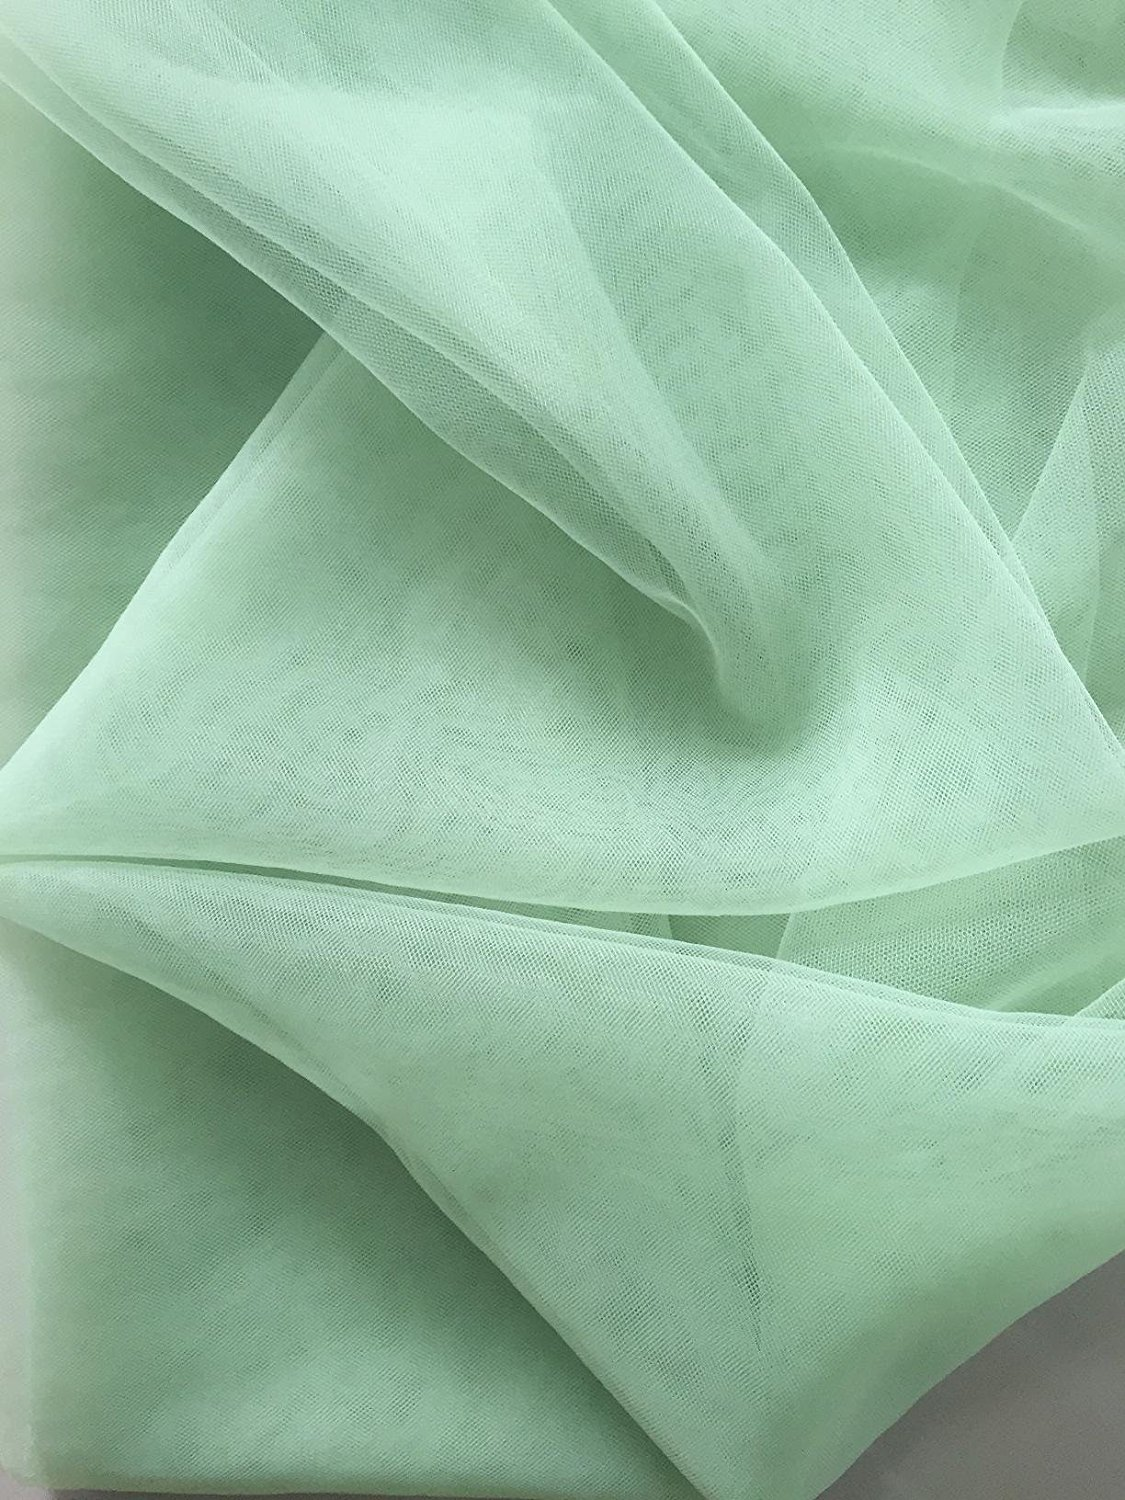 """Shatex DIY Fabric Mosquito Net, Insect Barrier Net, Olive Green, 60""""x5yard, 2pack"""